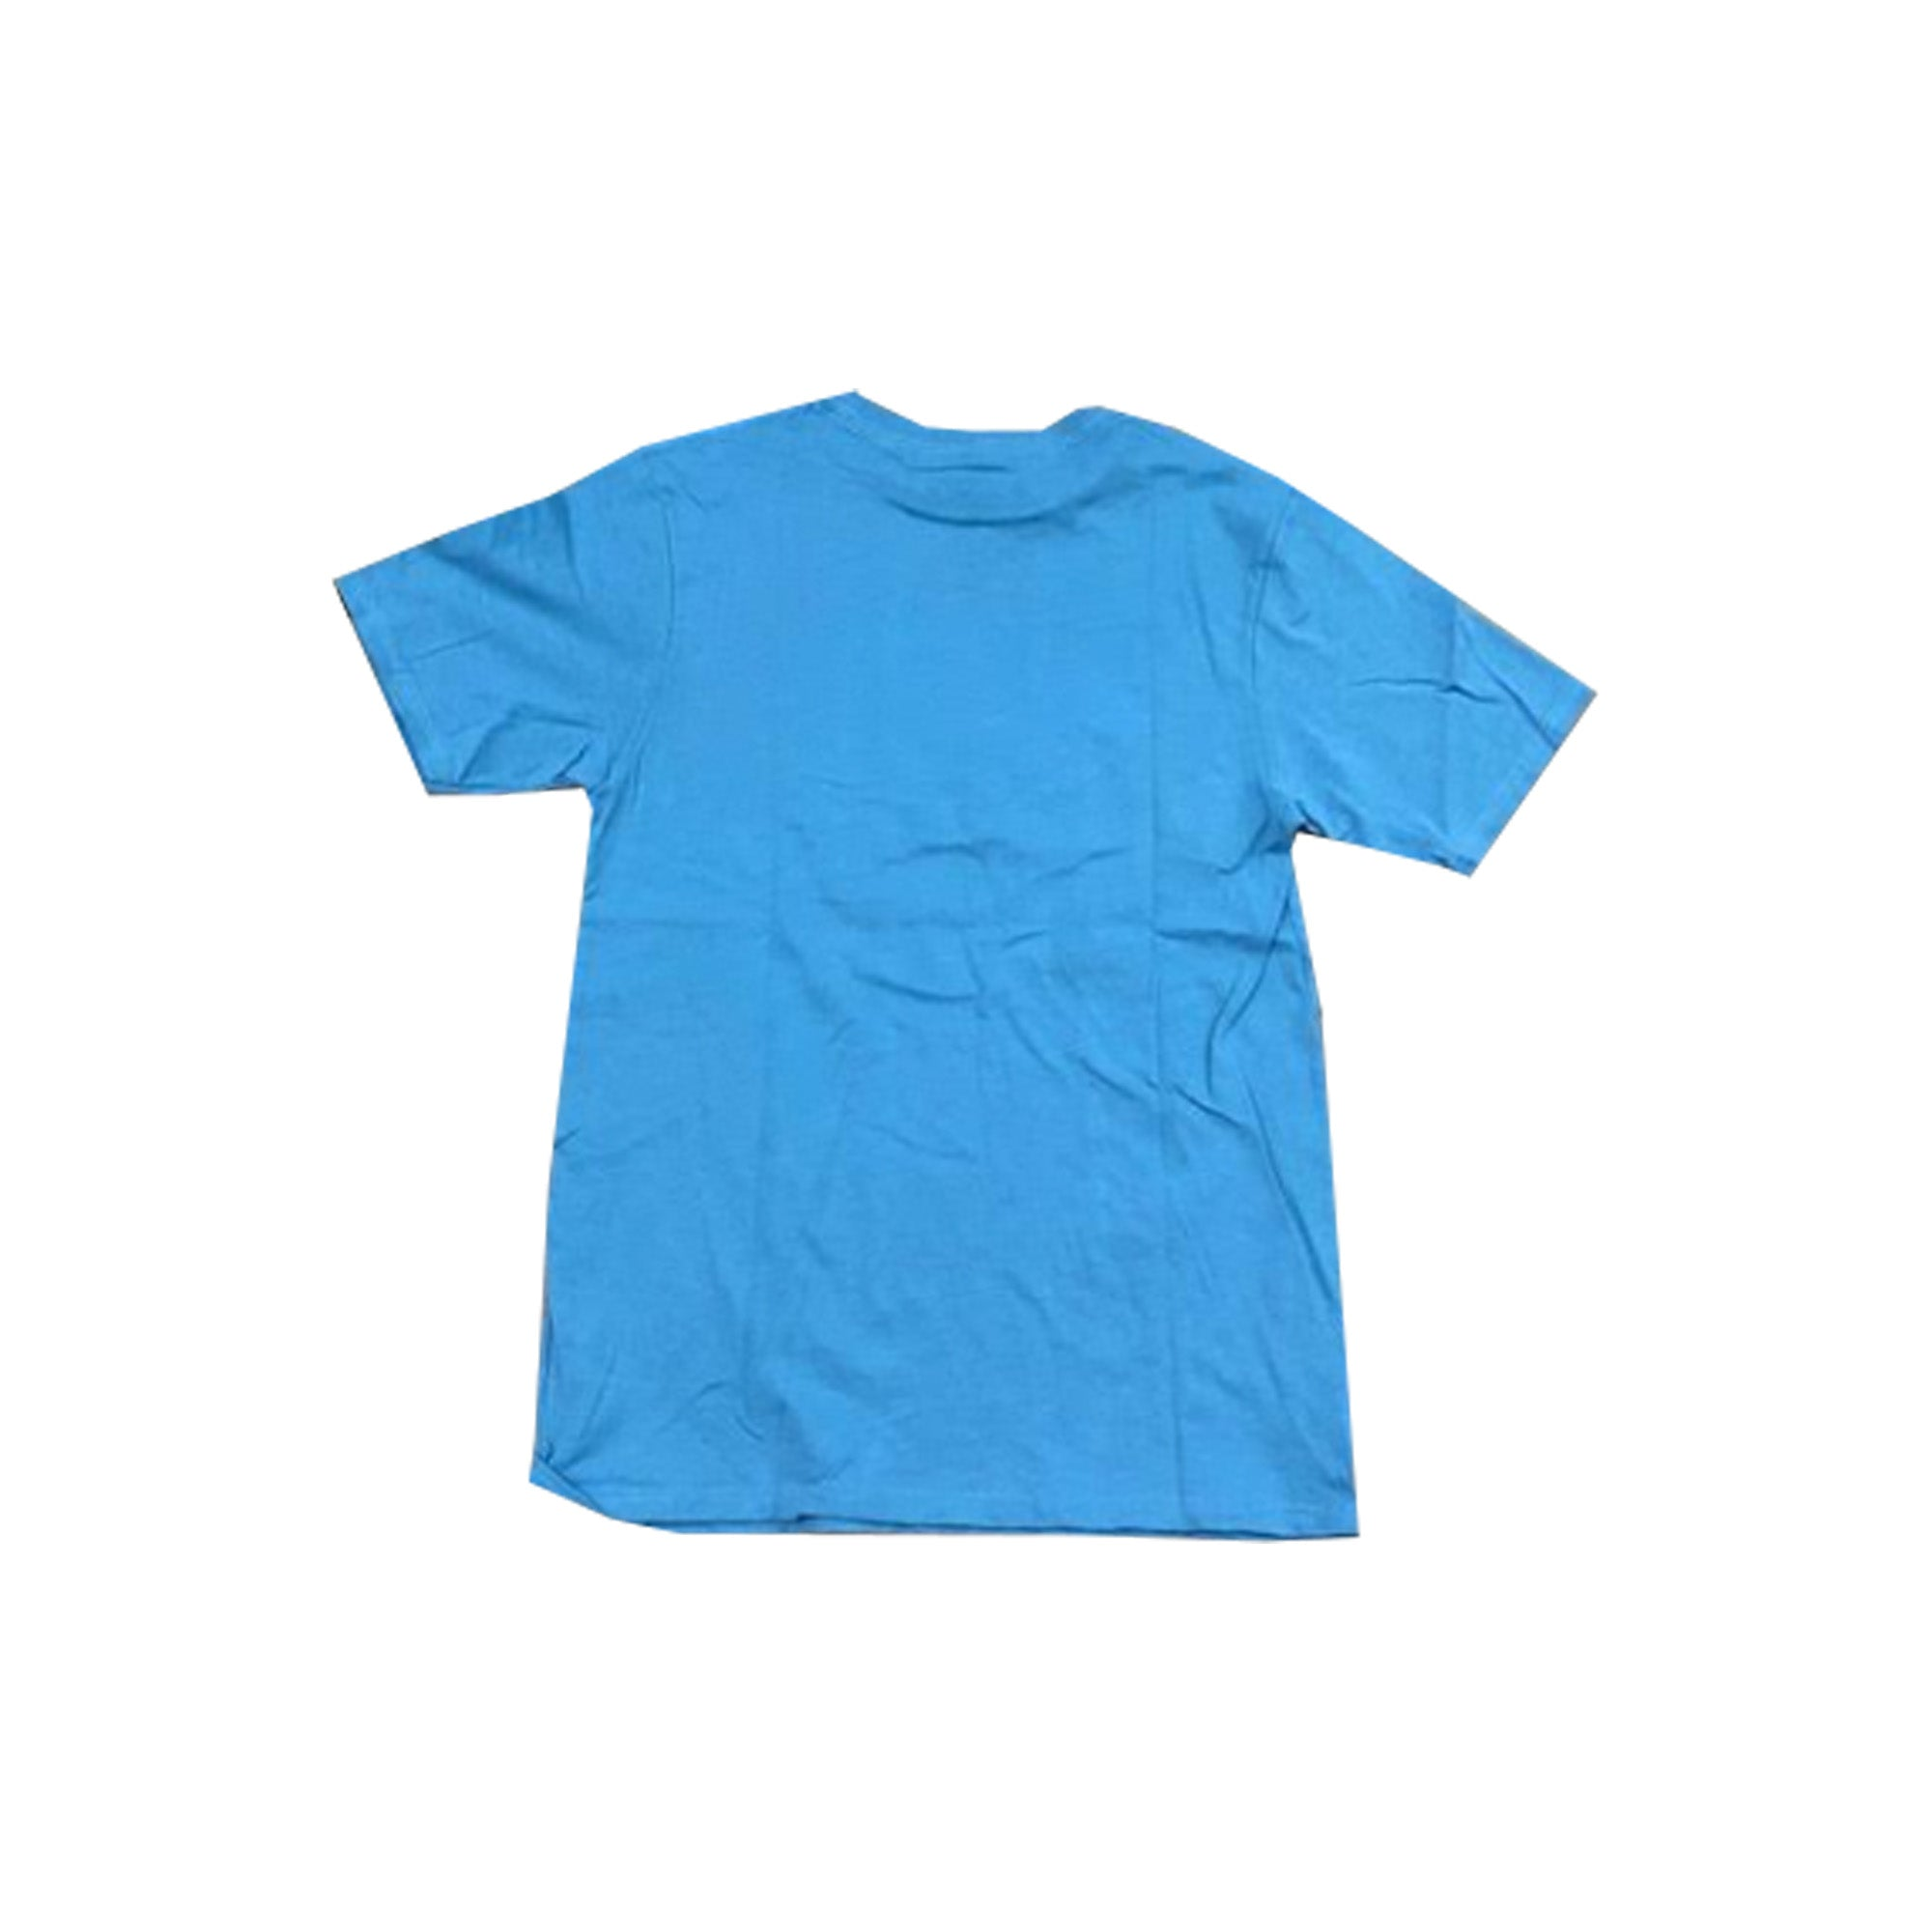 Vans Full Patch Fill Boy's S/S T-Shirt